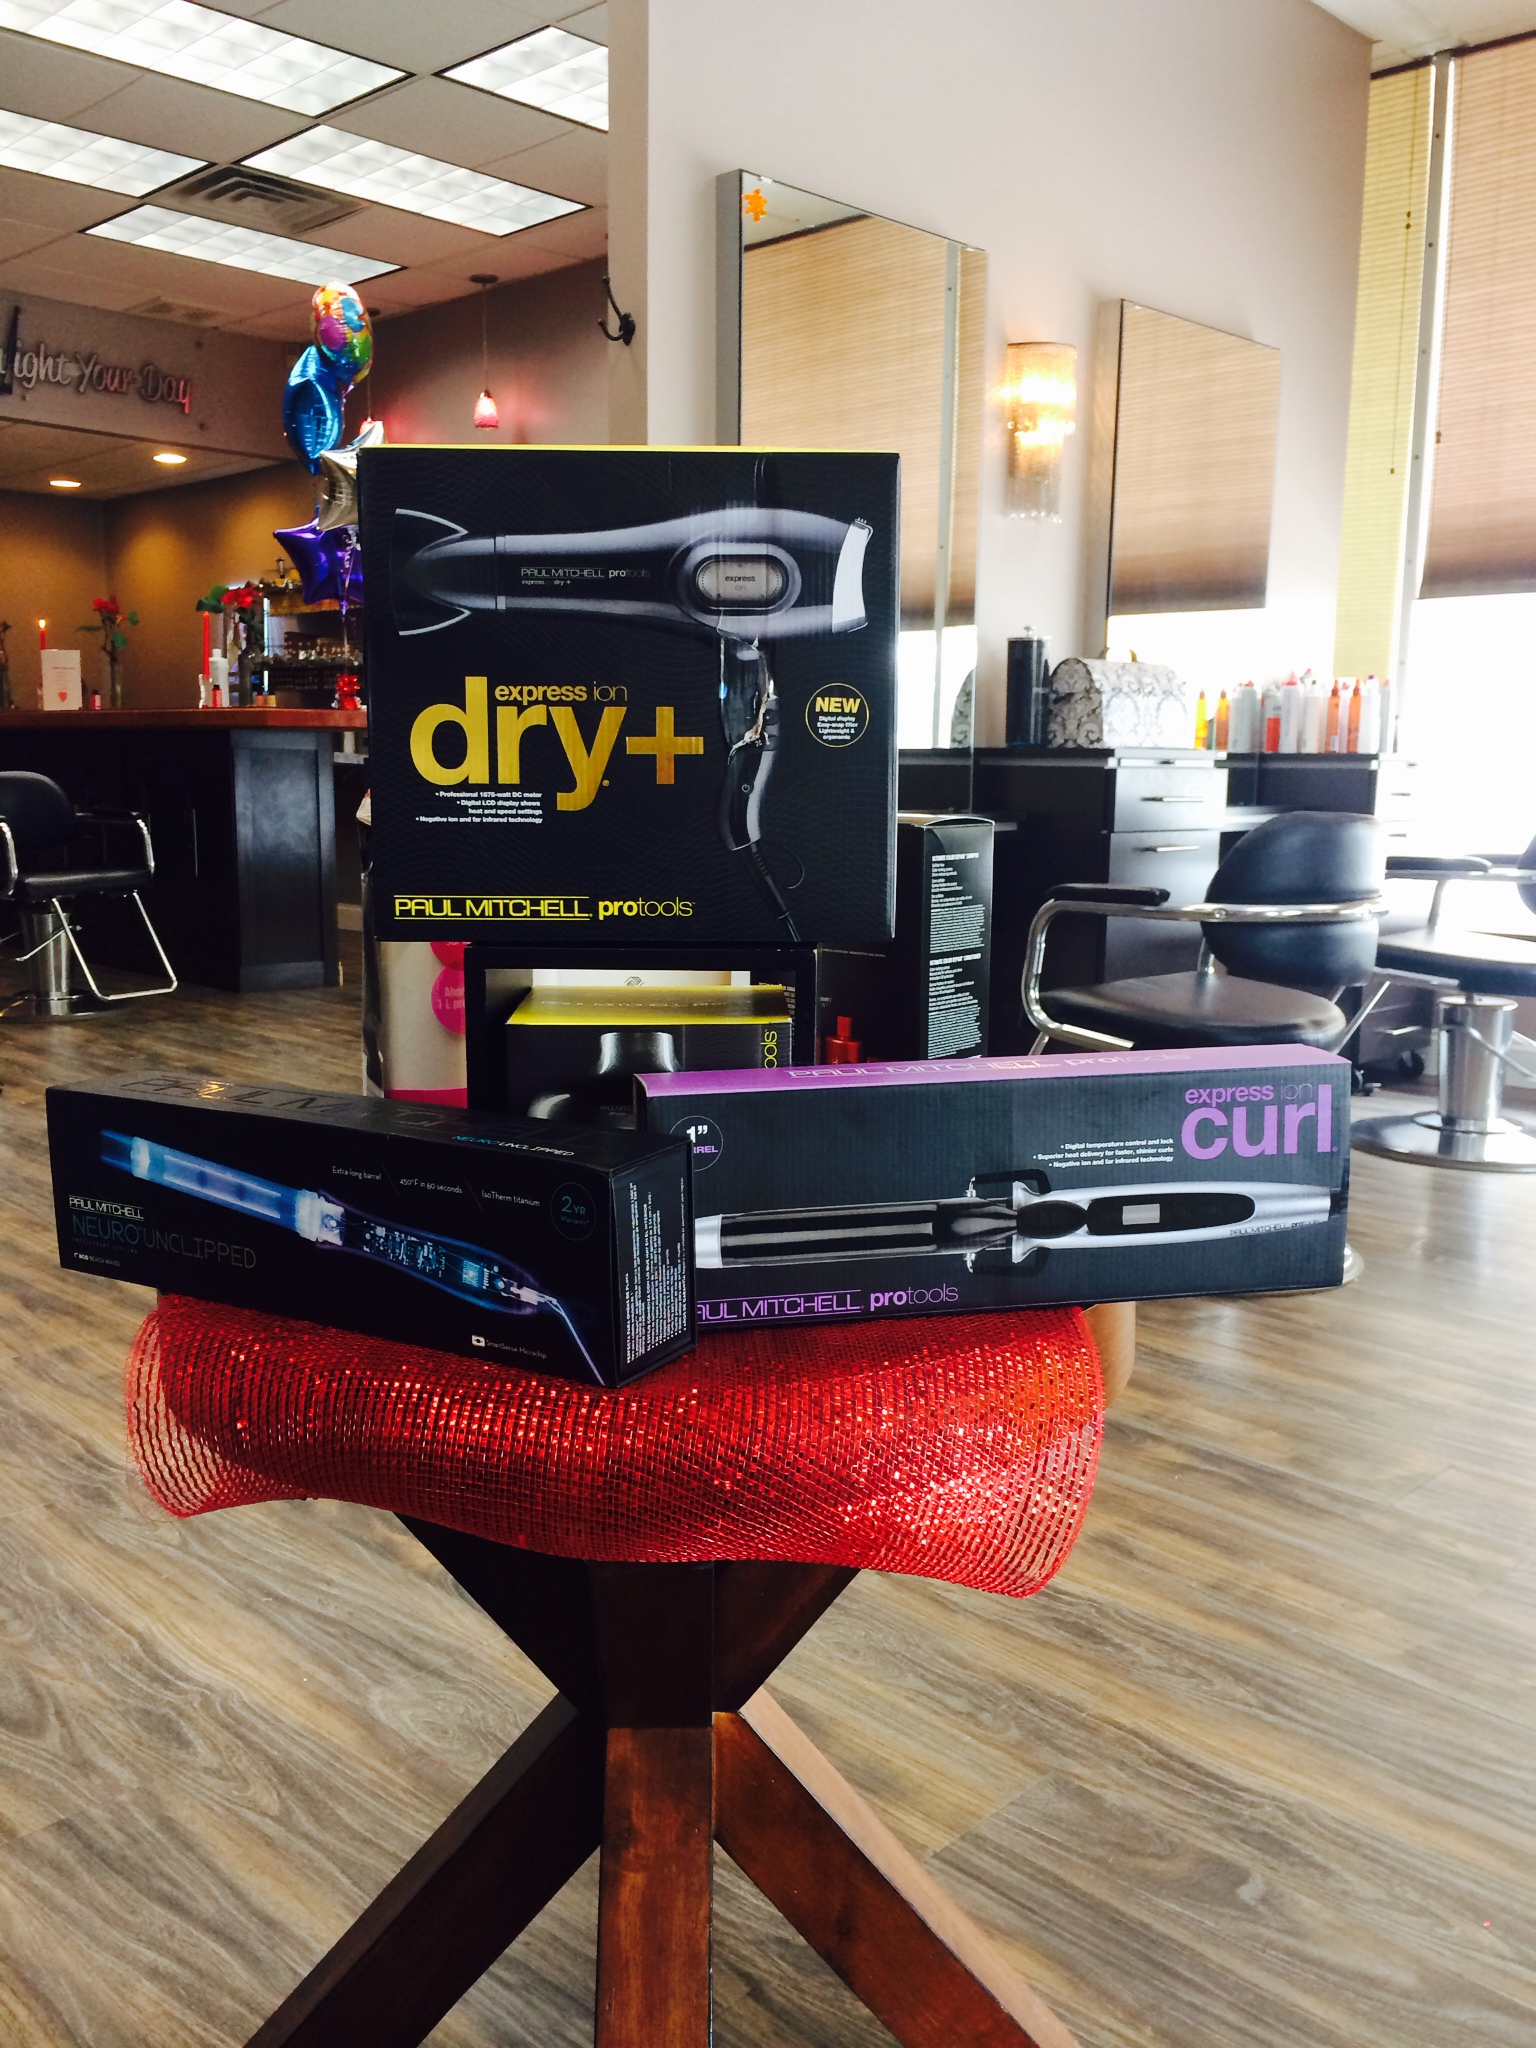 Hair Dryer, Neuro Unclipped, and Express Ion Curl Curling Iron - get yours now at The Colorist Salon in Cleveland, OH